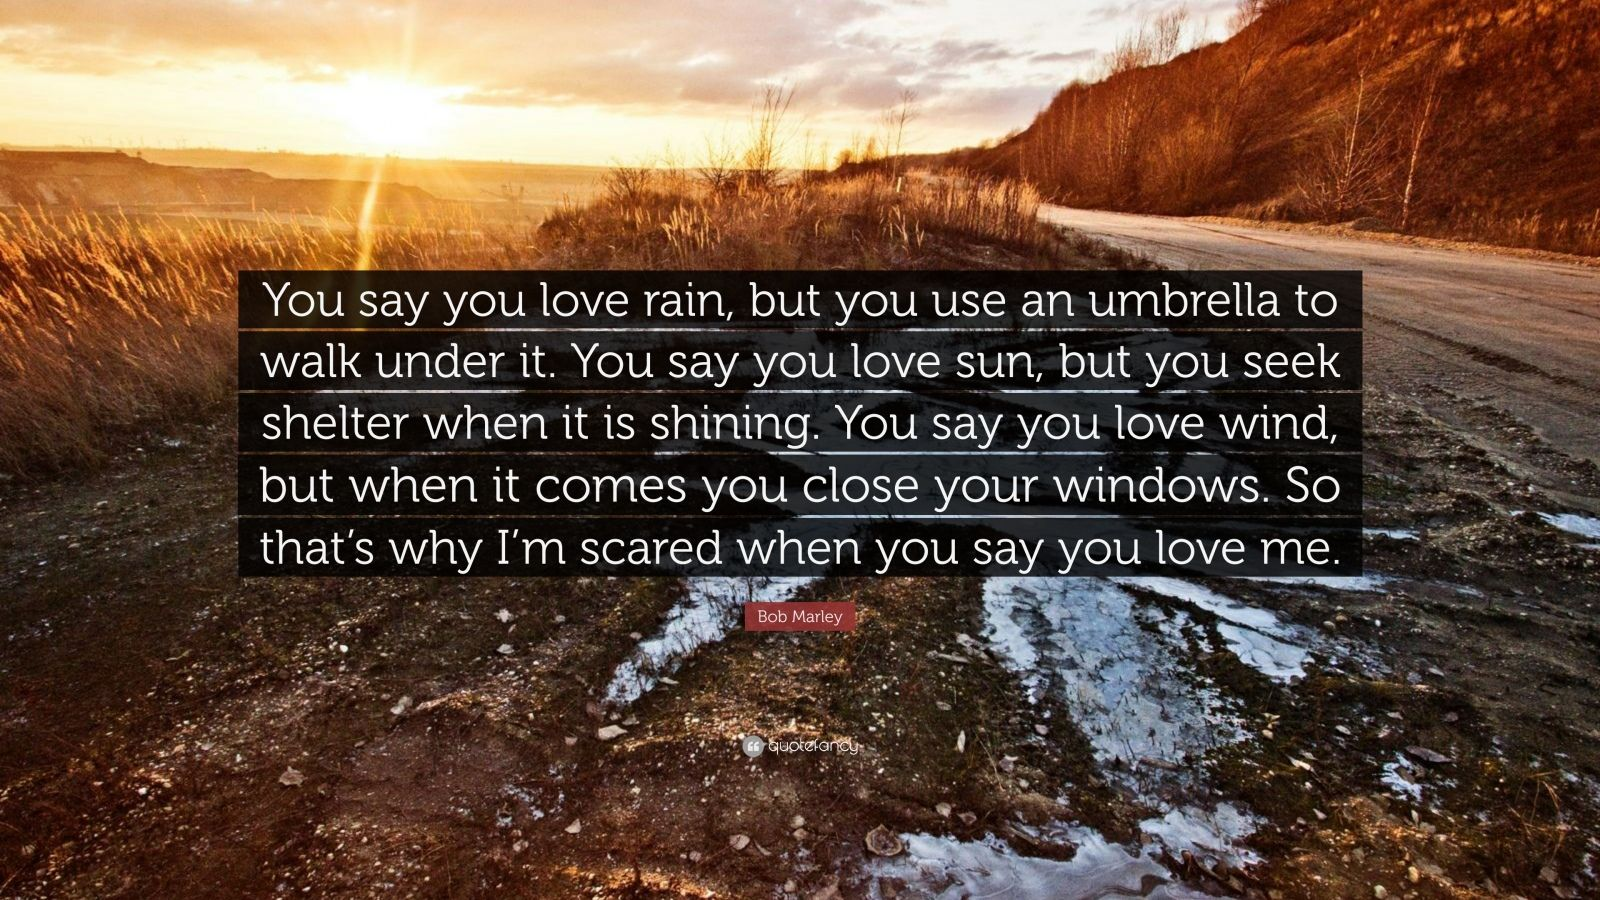 """Bob Marley Quote: """"You say you love rain, but you use an umbrella to walk under it. You say you love sun, but you seek shelter when it is shining. You say you love wind, but when it comes you close your windows. So that's why I'm scared when you say you love me."""""""